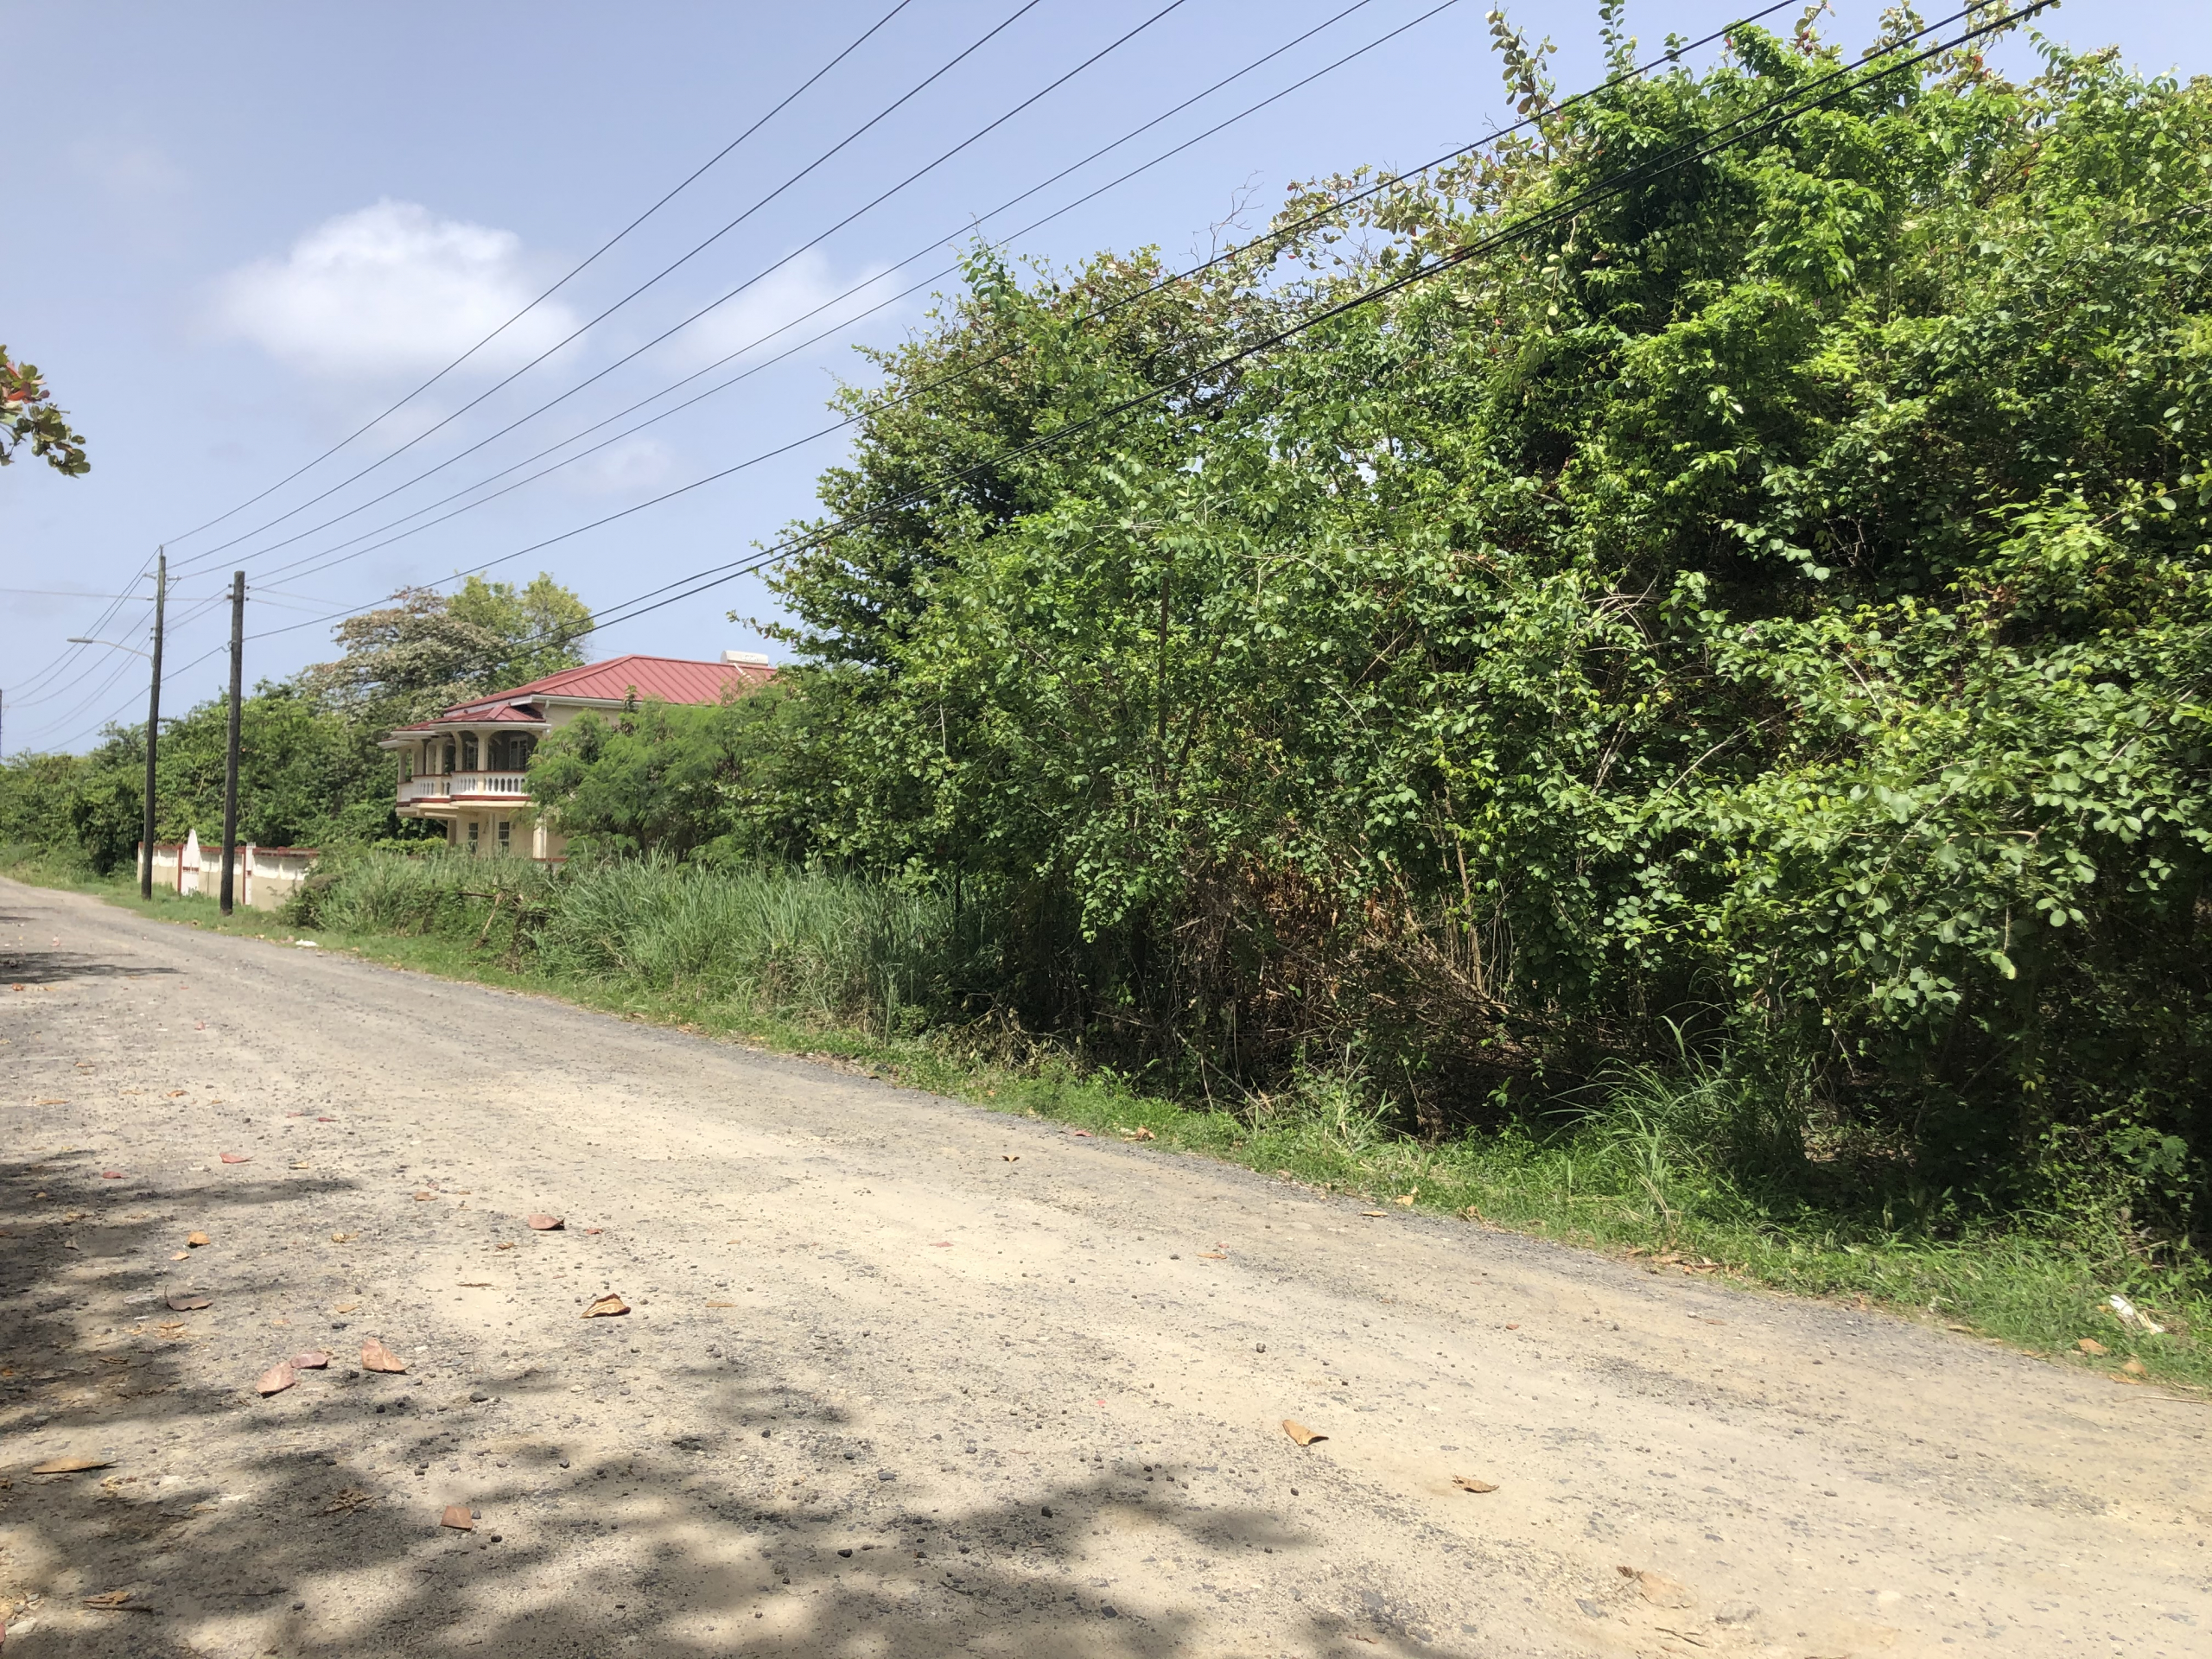 hotel for sale in vieux fort st lucia trees